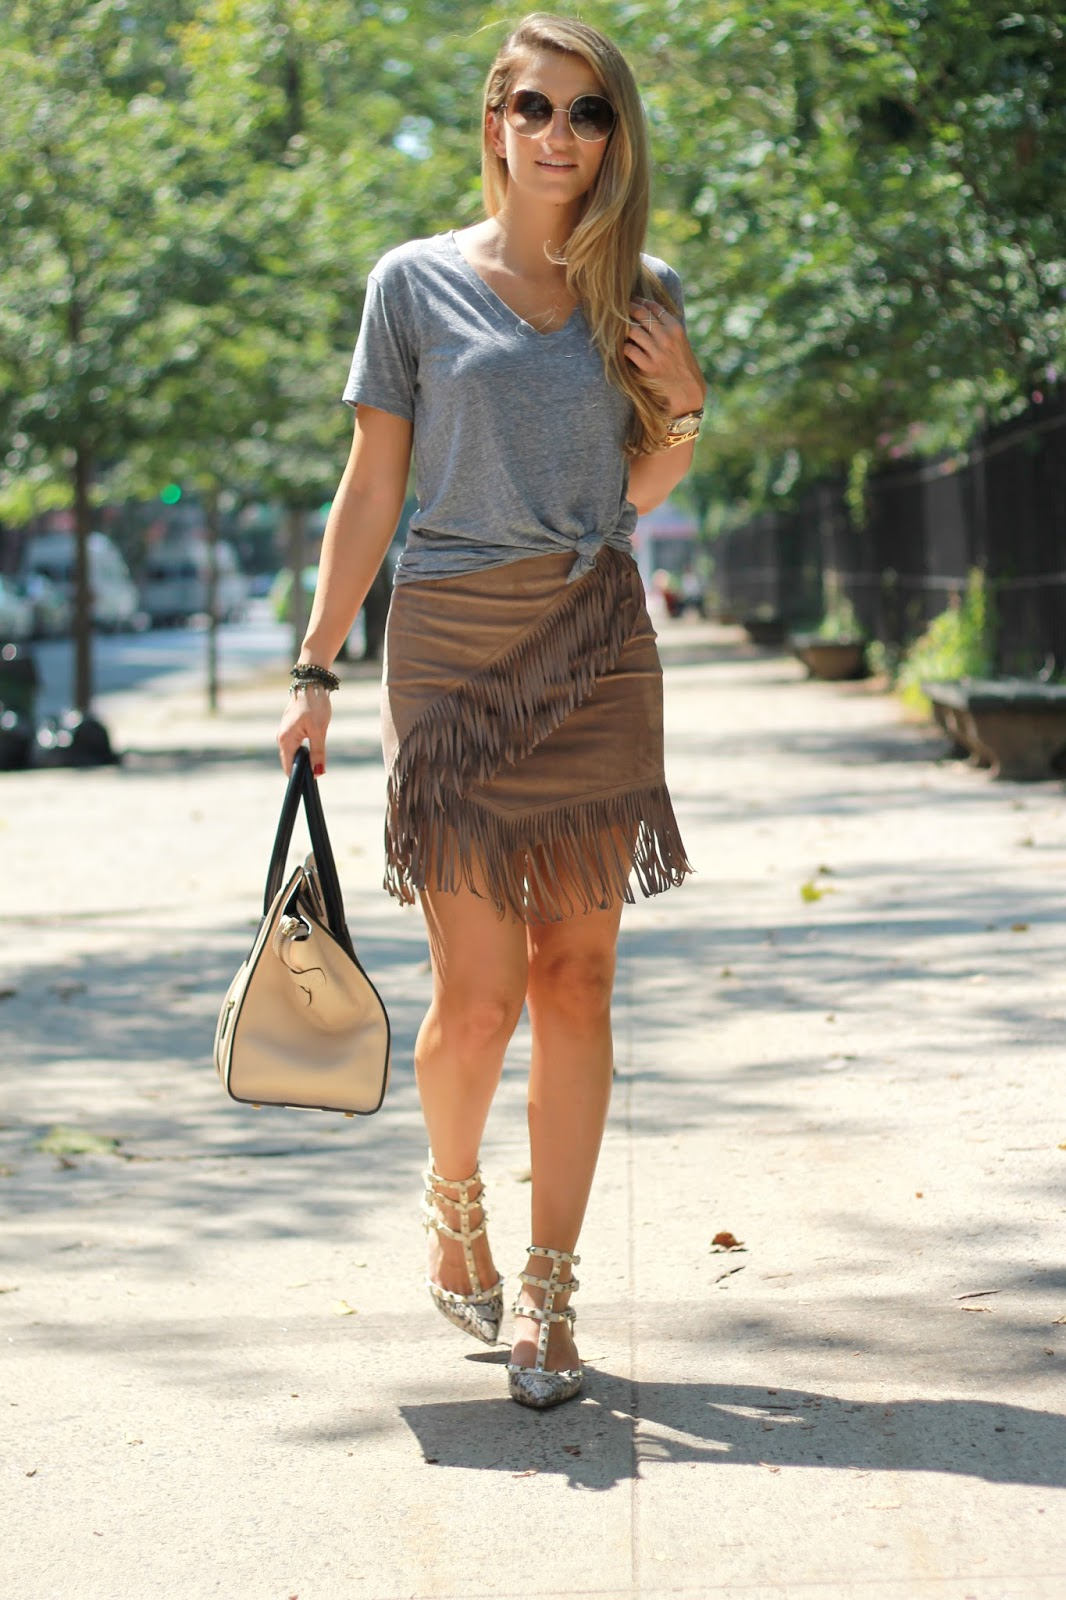 dressed for dreams, fringe skirt outfit ideas